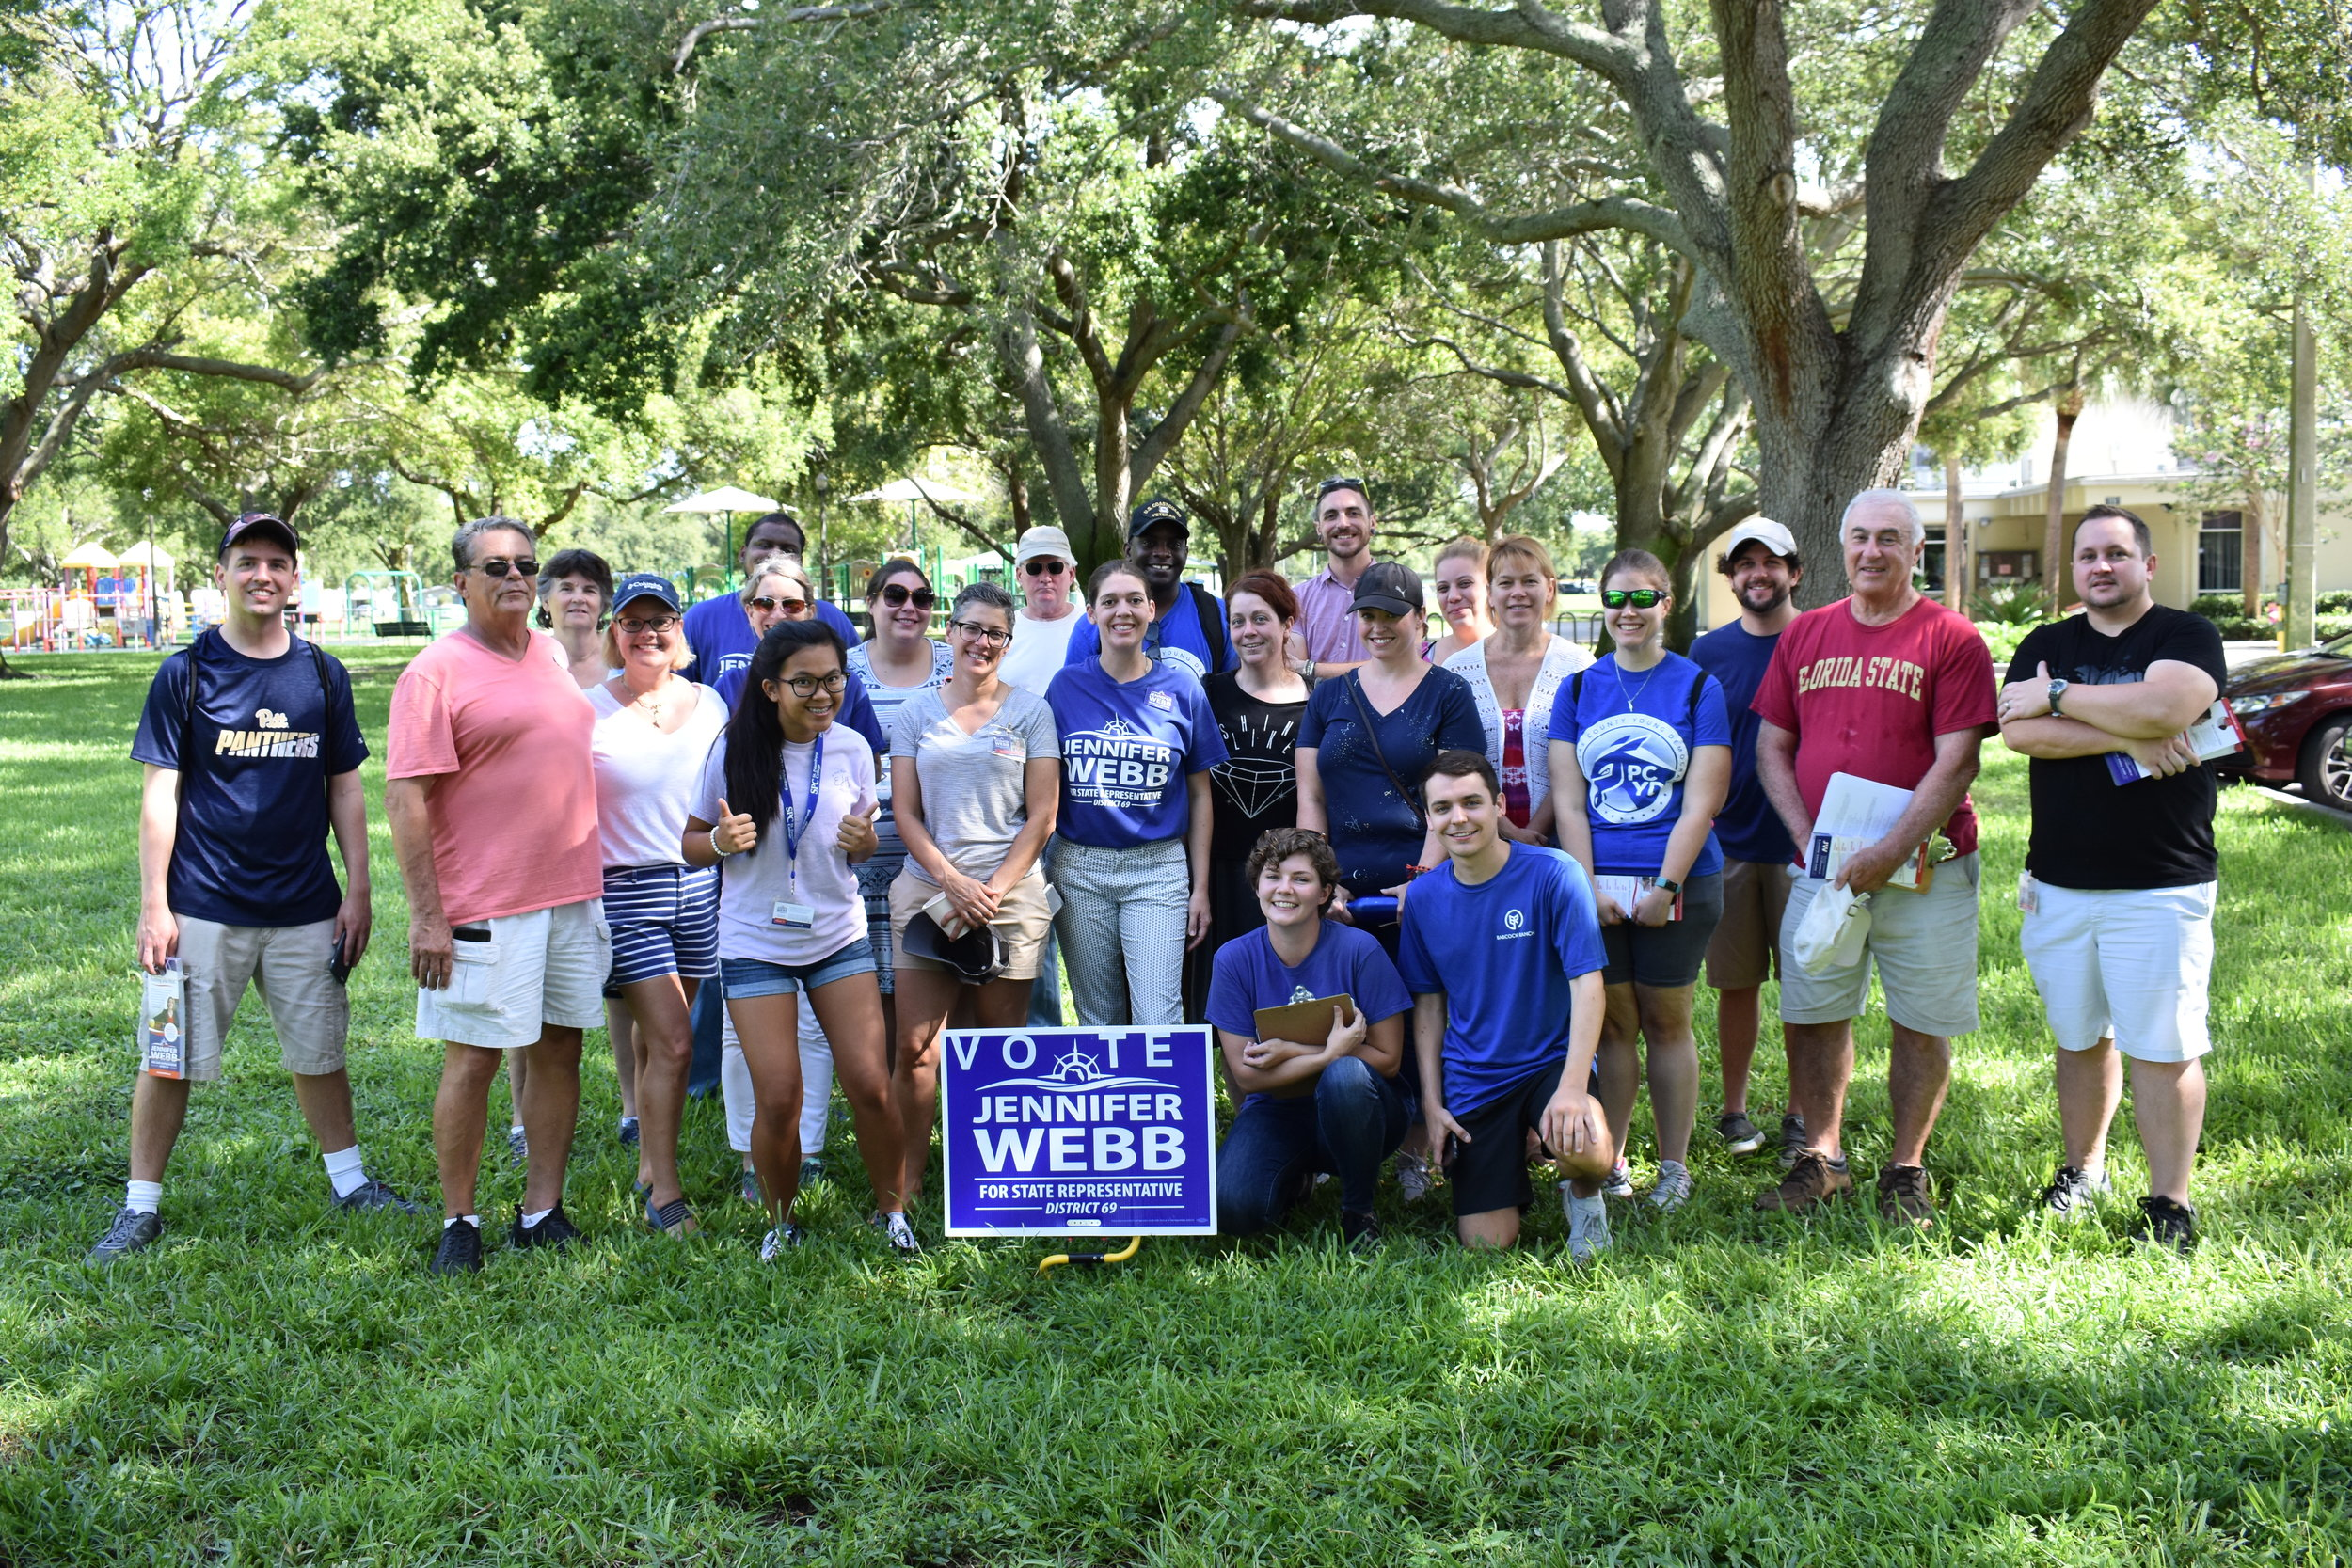 Voter Blitz on July 14 & 15!  - #TeamWebb contacted over 4100 voters in House District 69 in just weekend! Sign up to volunteer for our weekly phonebanks and canvasses!